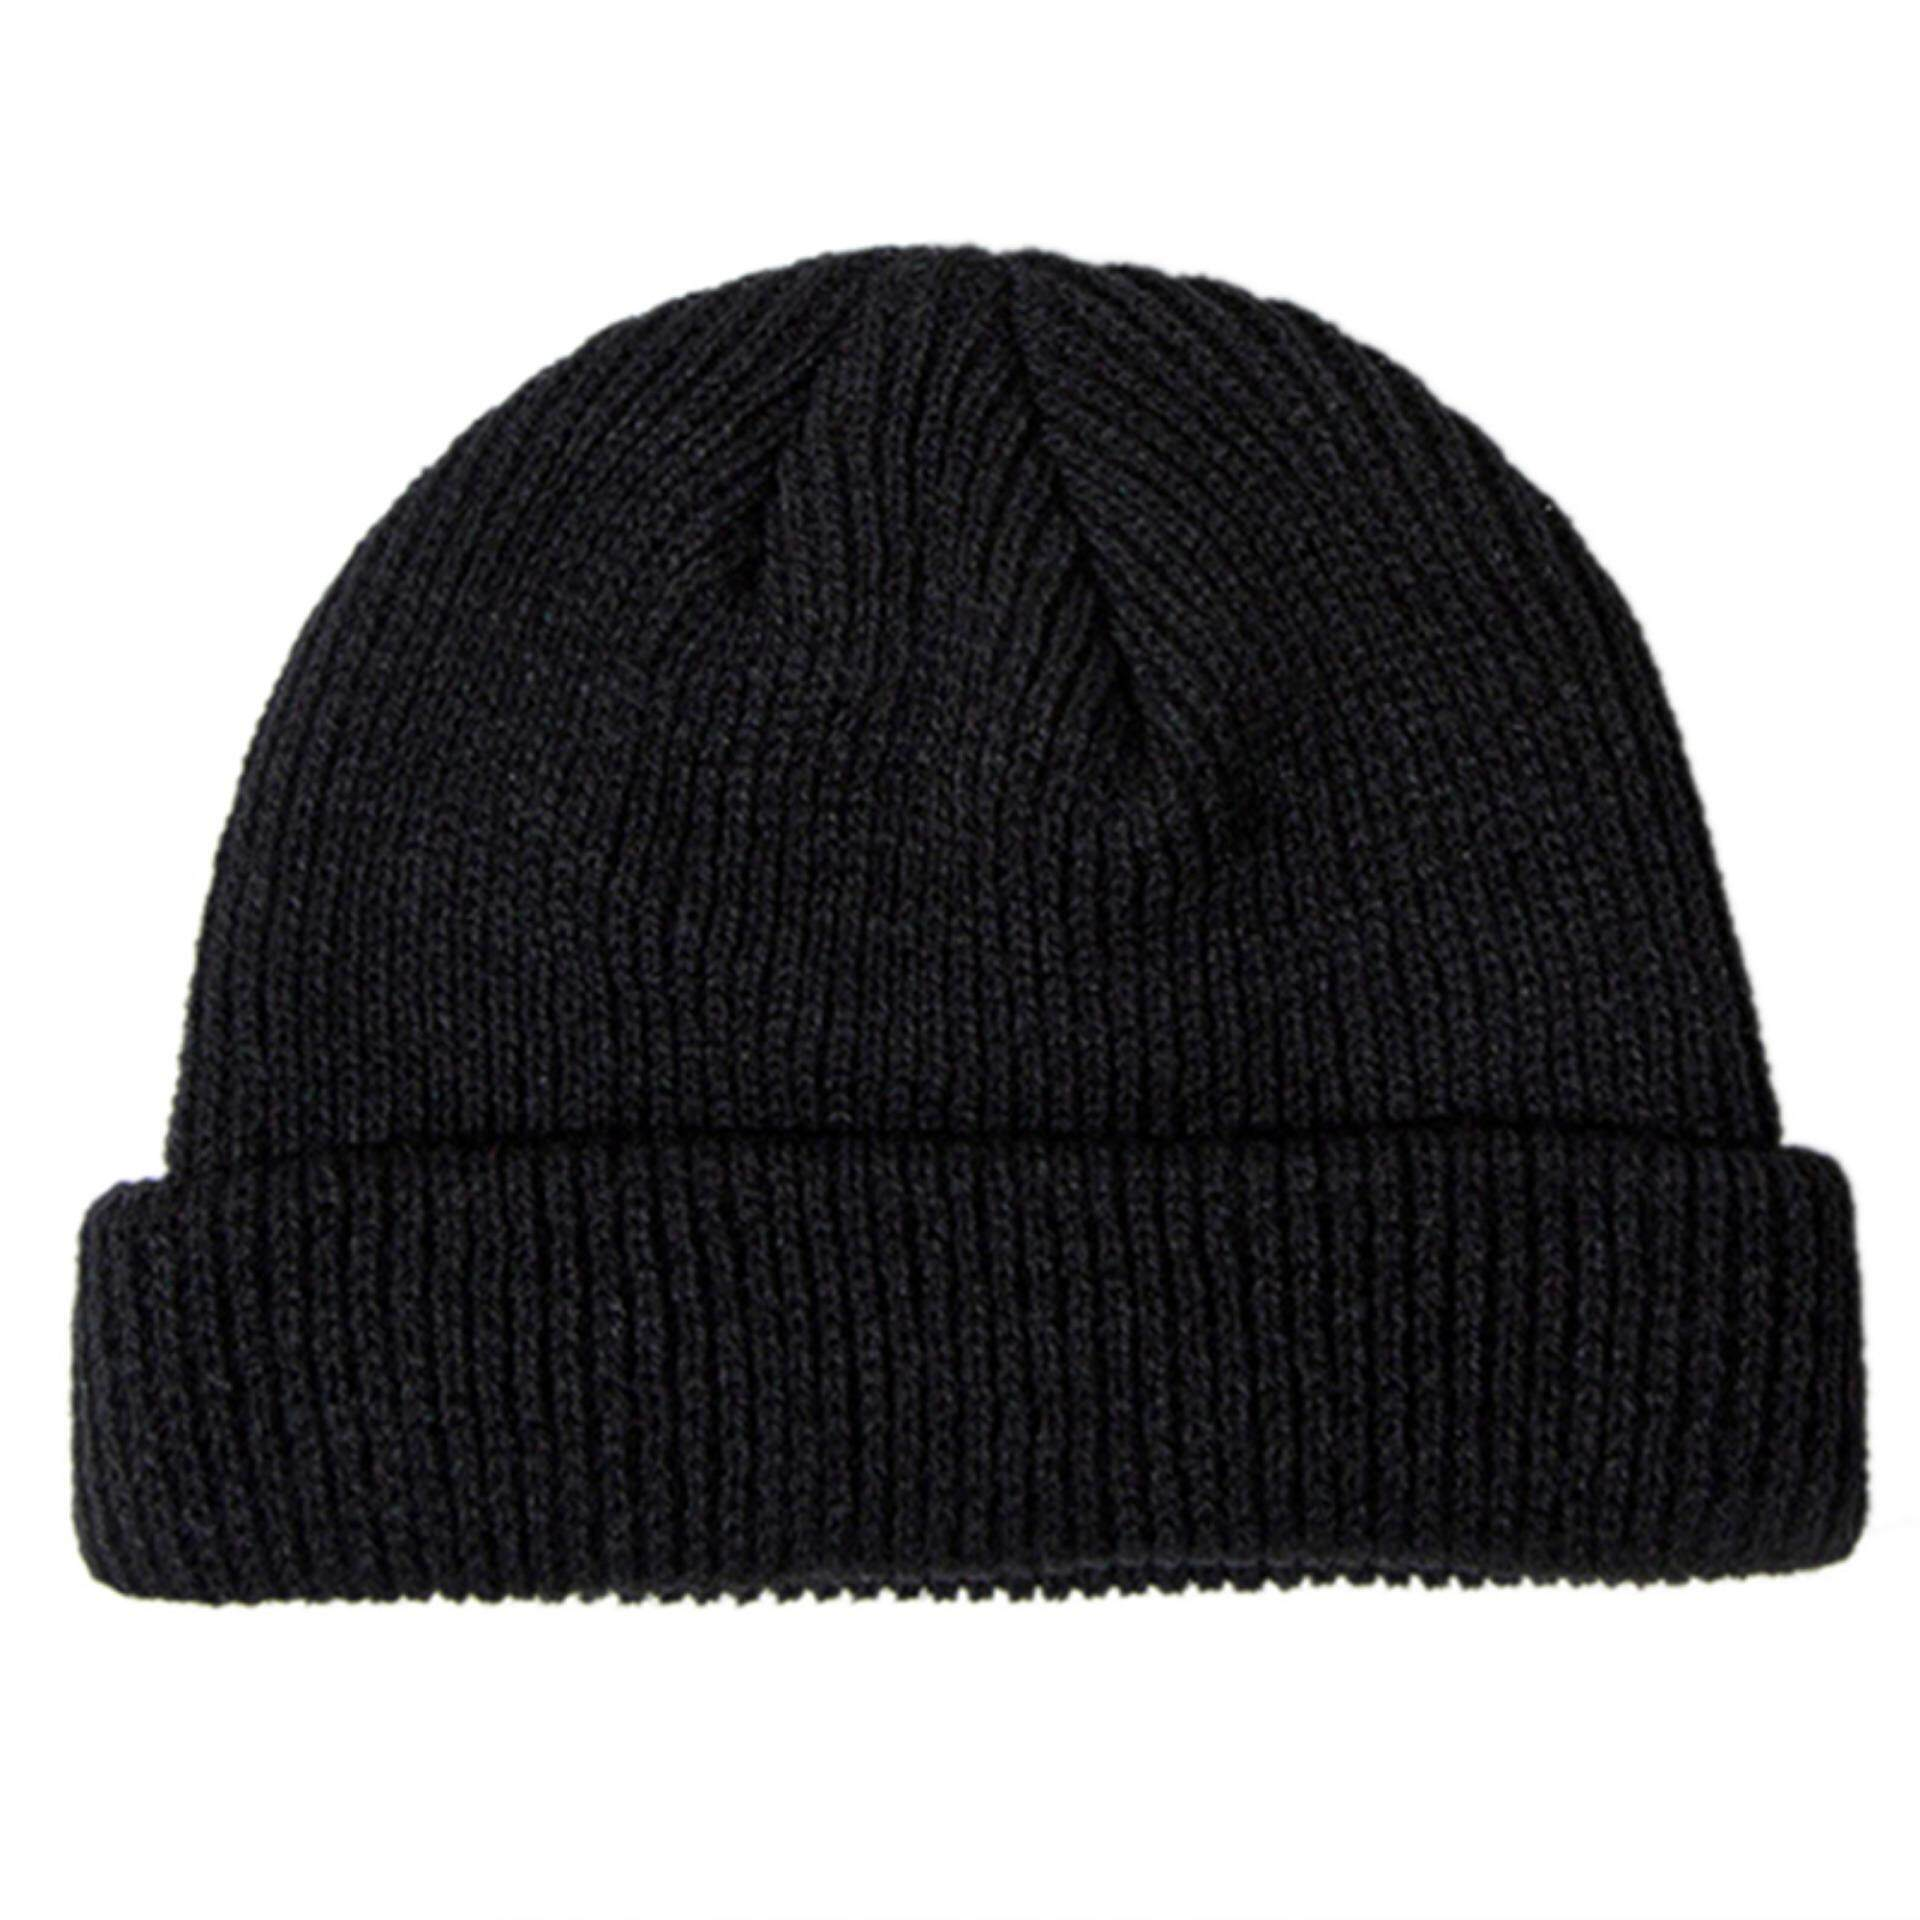 686b18c1681 121313 items found in Hats   Caps. Unisex Men Women Beanie Hat Warm Ribbed  Winter Turn Ski Fisherman Hat Fashion